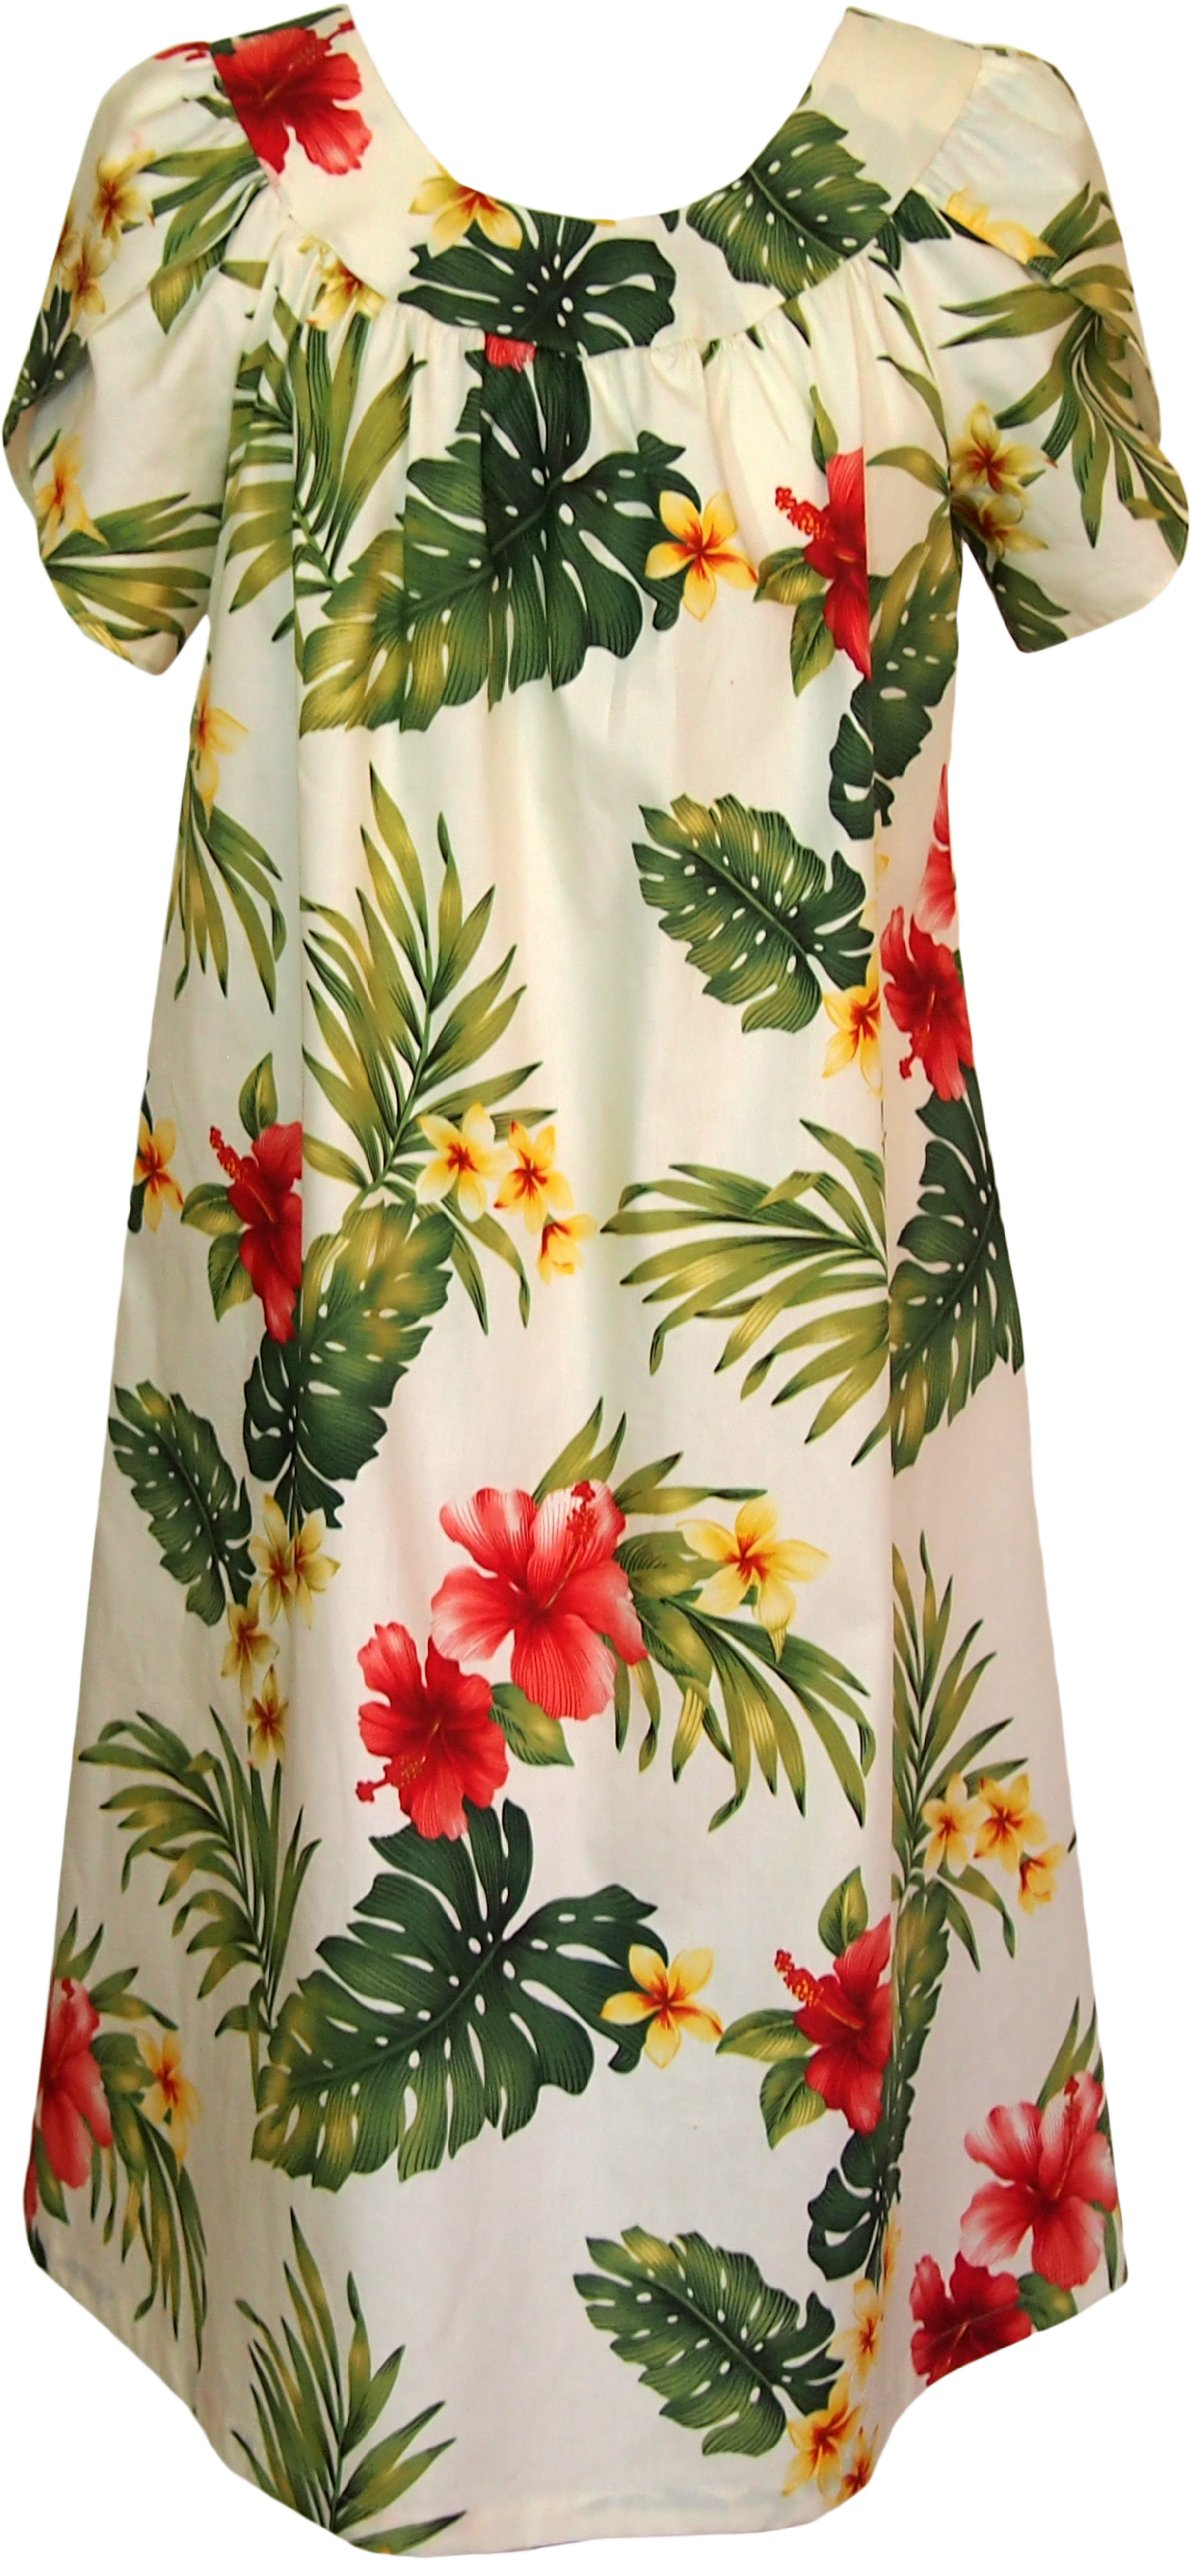 RJC Womens Tropical Summer Hibiscus Tea Length Muumuu Dress Beige 1X Plus